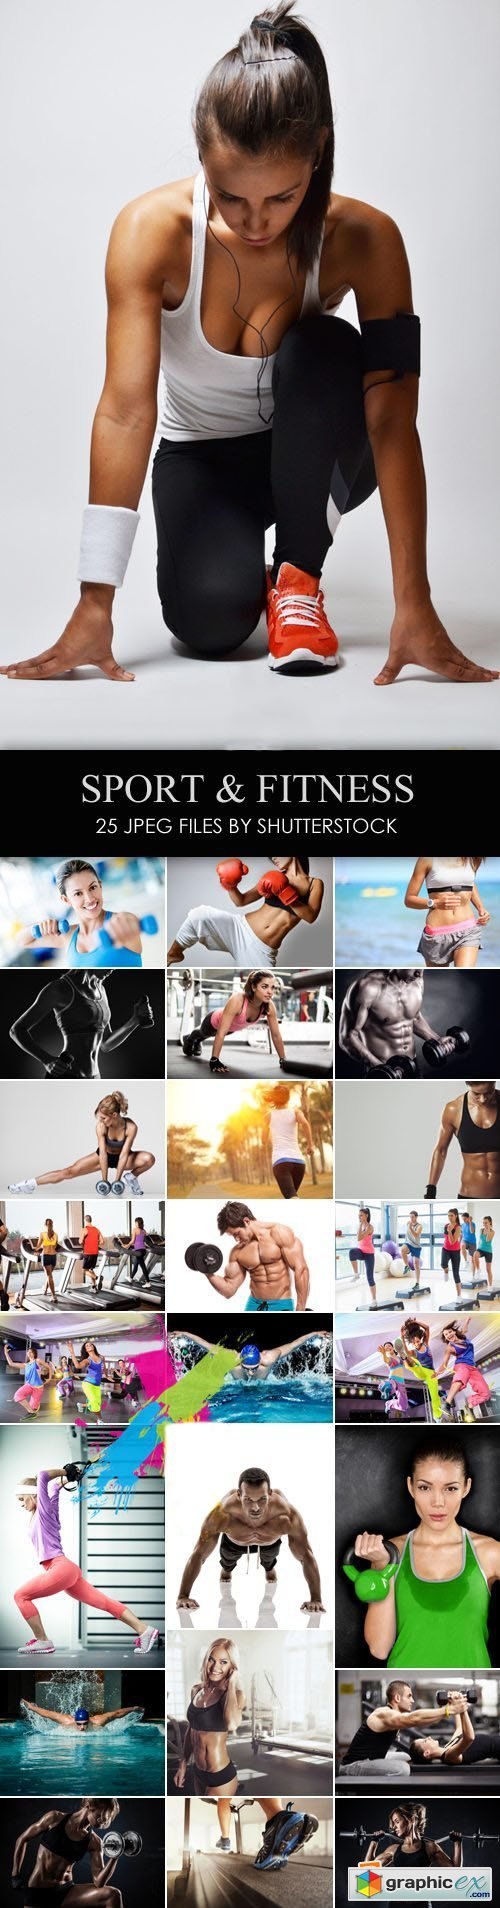 Stock Photo - Sport & Fitness